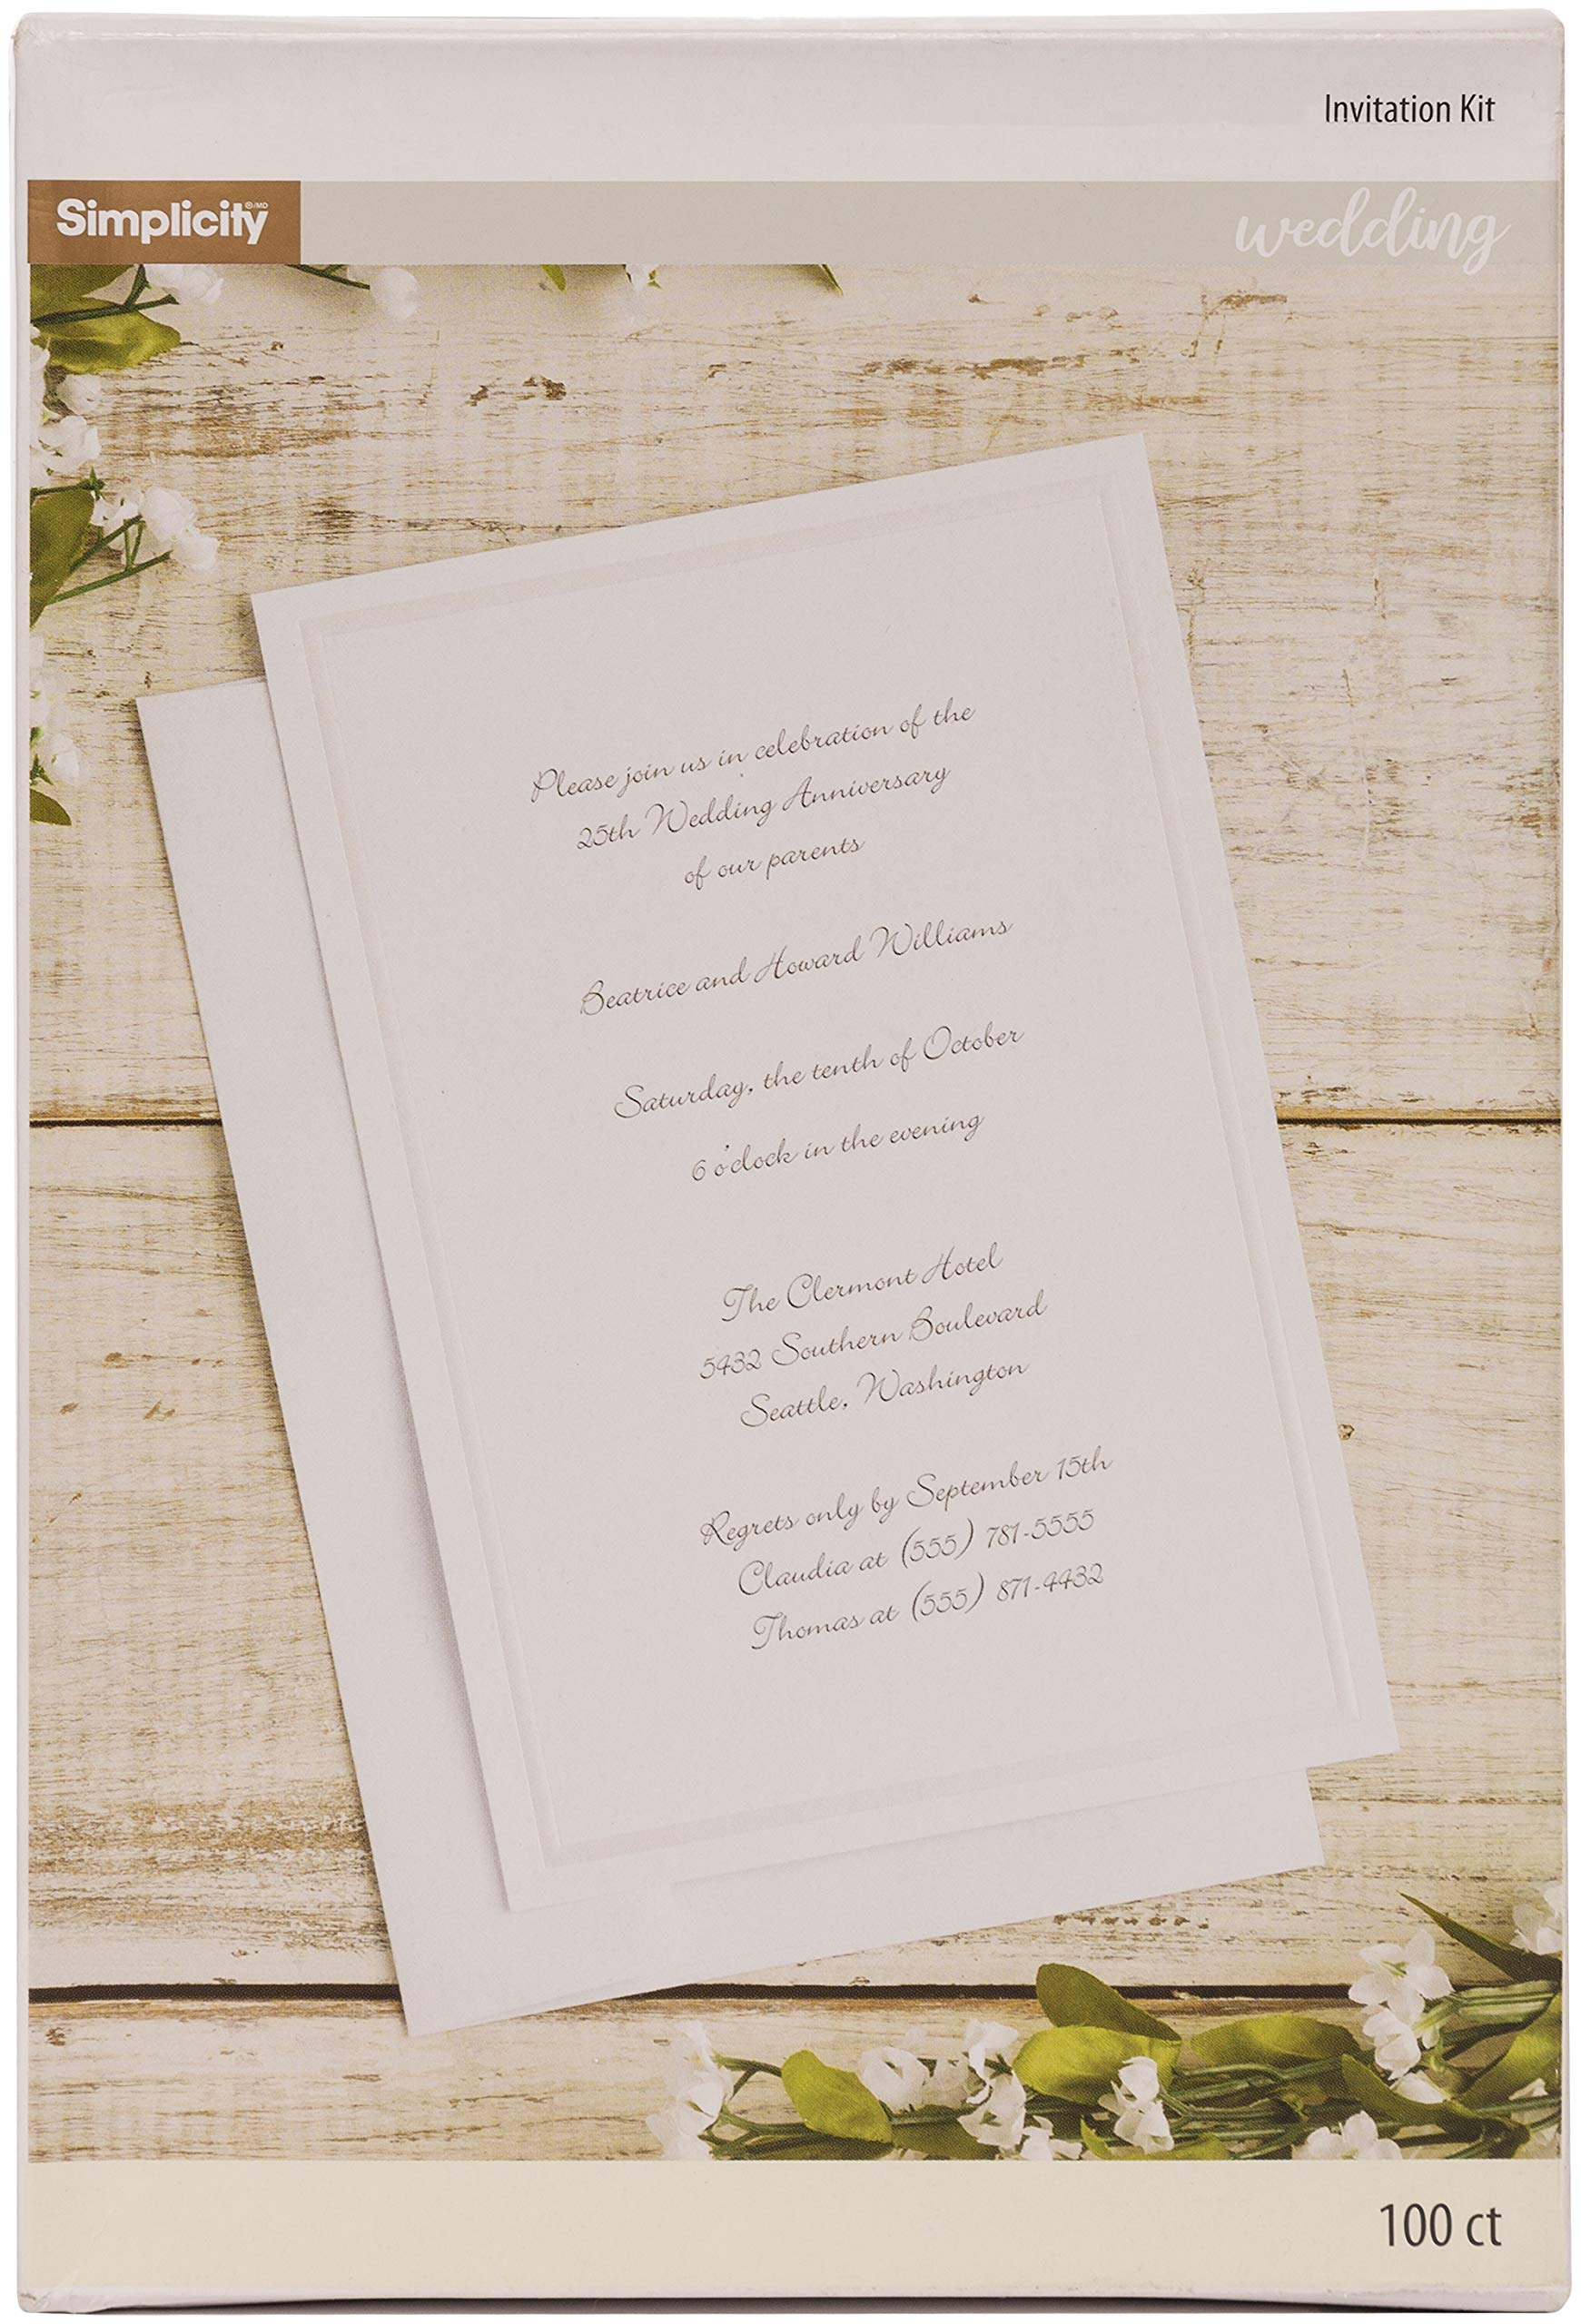 Simplicity White Wedding Invitation Cards with Envelopes, 100pc, 5.5'' W x 8.5''H - White by Simplicity